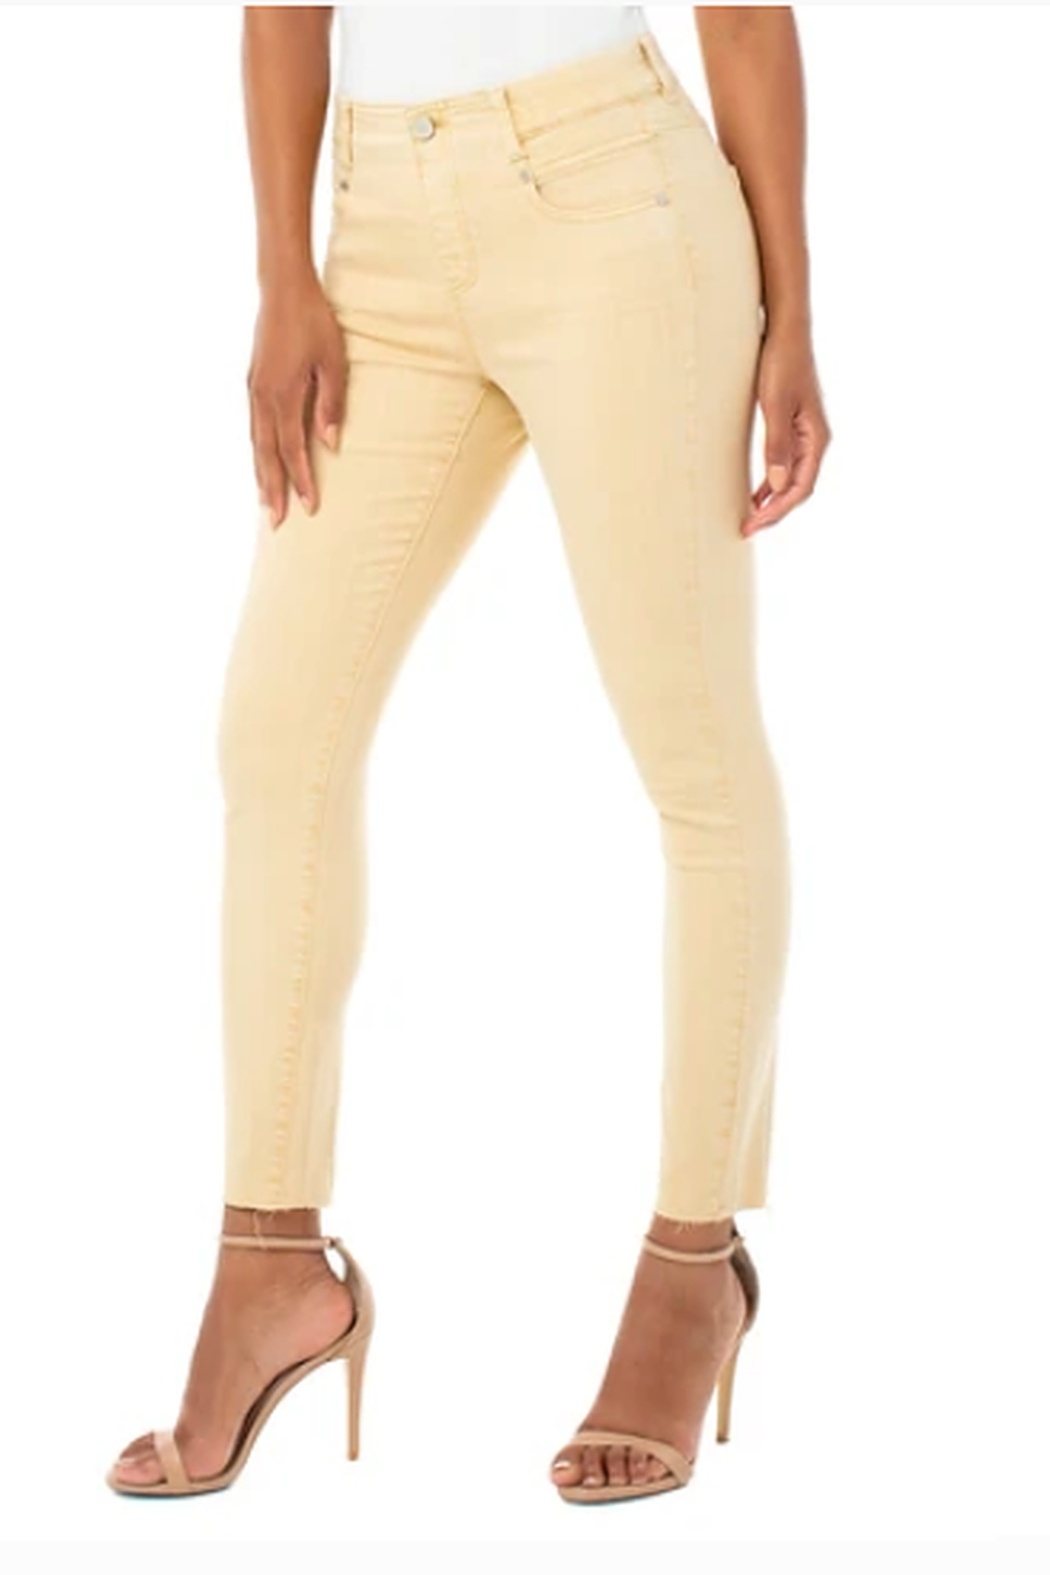 Liverpool Gia Glider Crop Cut Hem 27' ins.- DIJON COLOR - Front Cropped Image